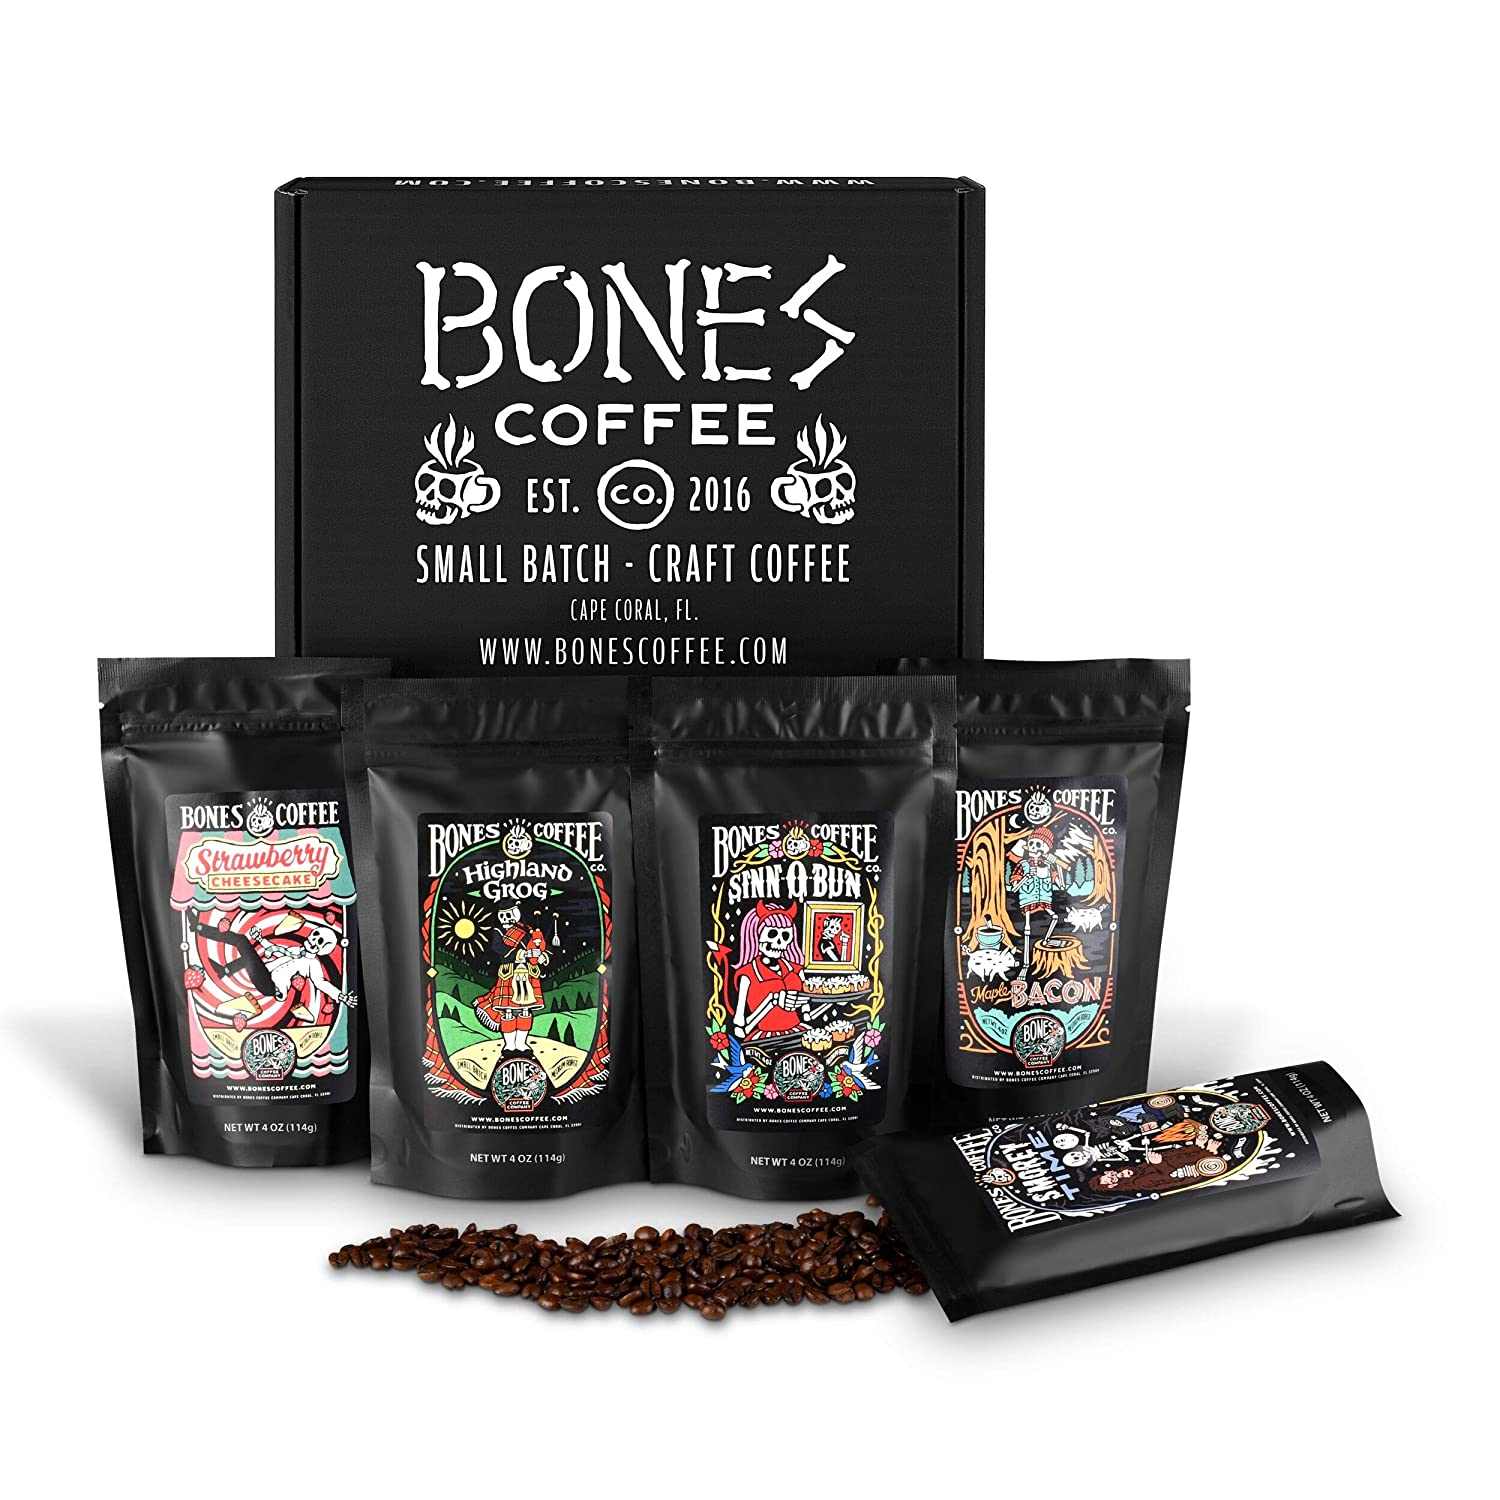 BONES Craft Coffee review